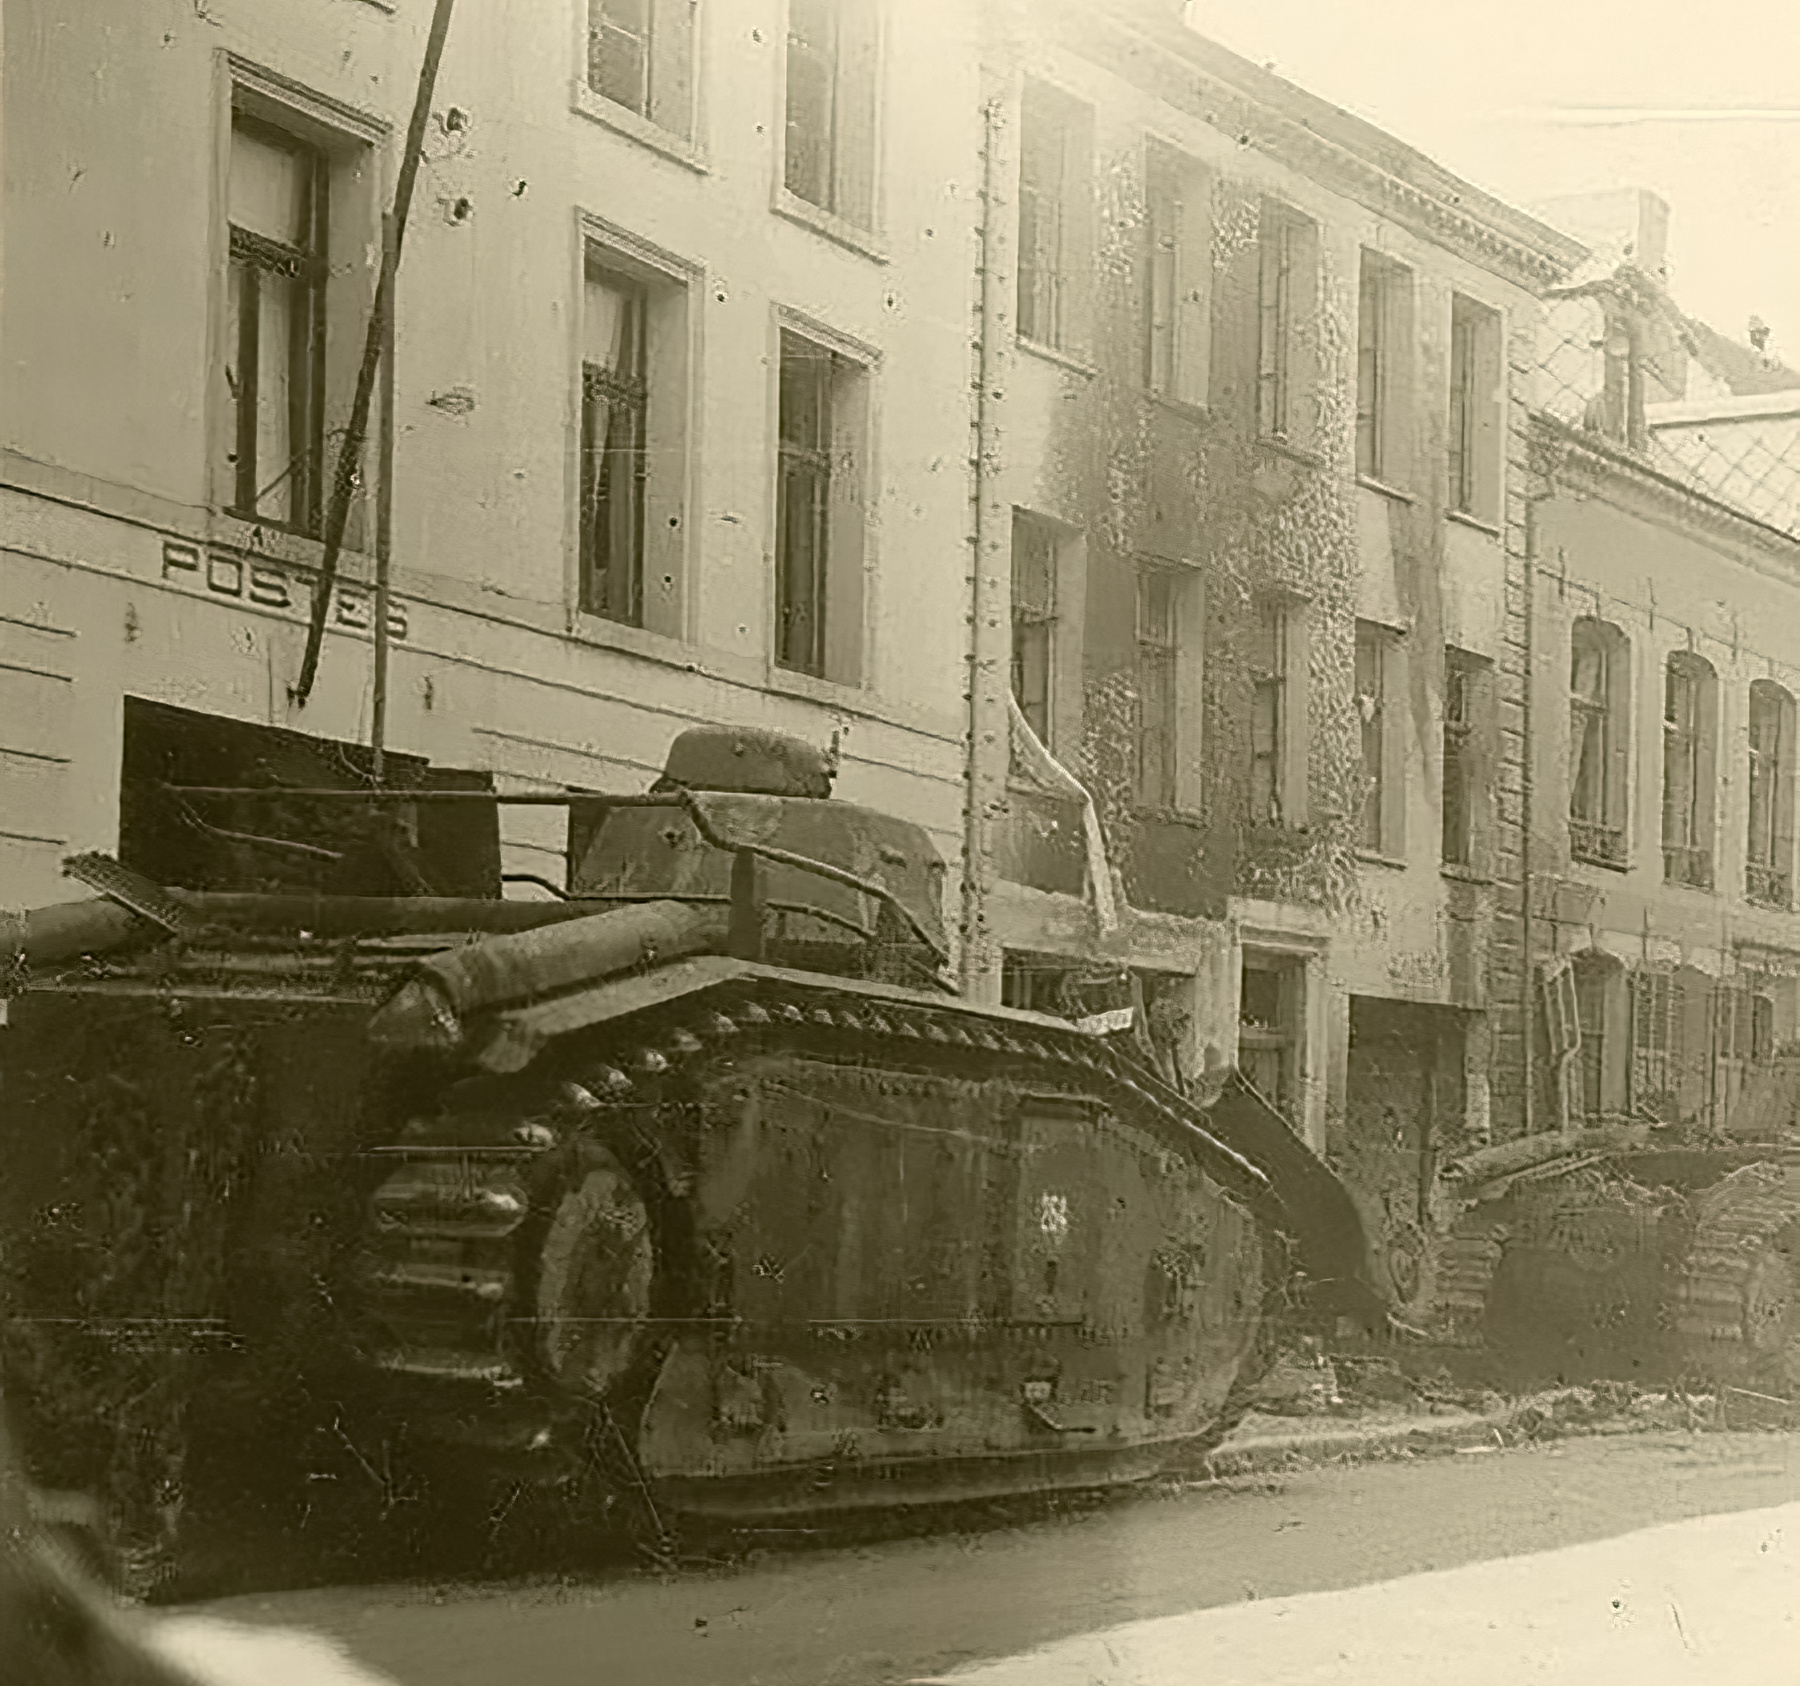 French Army Renault Char B1 White 254 knocked out during the battle of France 1940 ebay 01